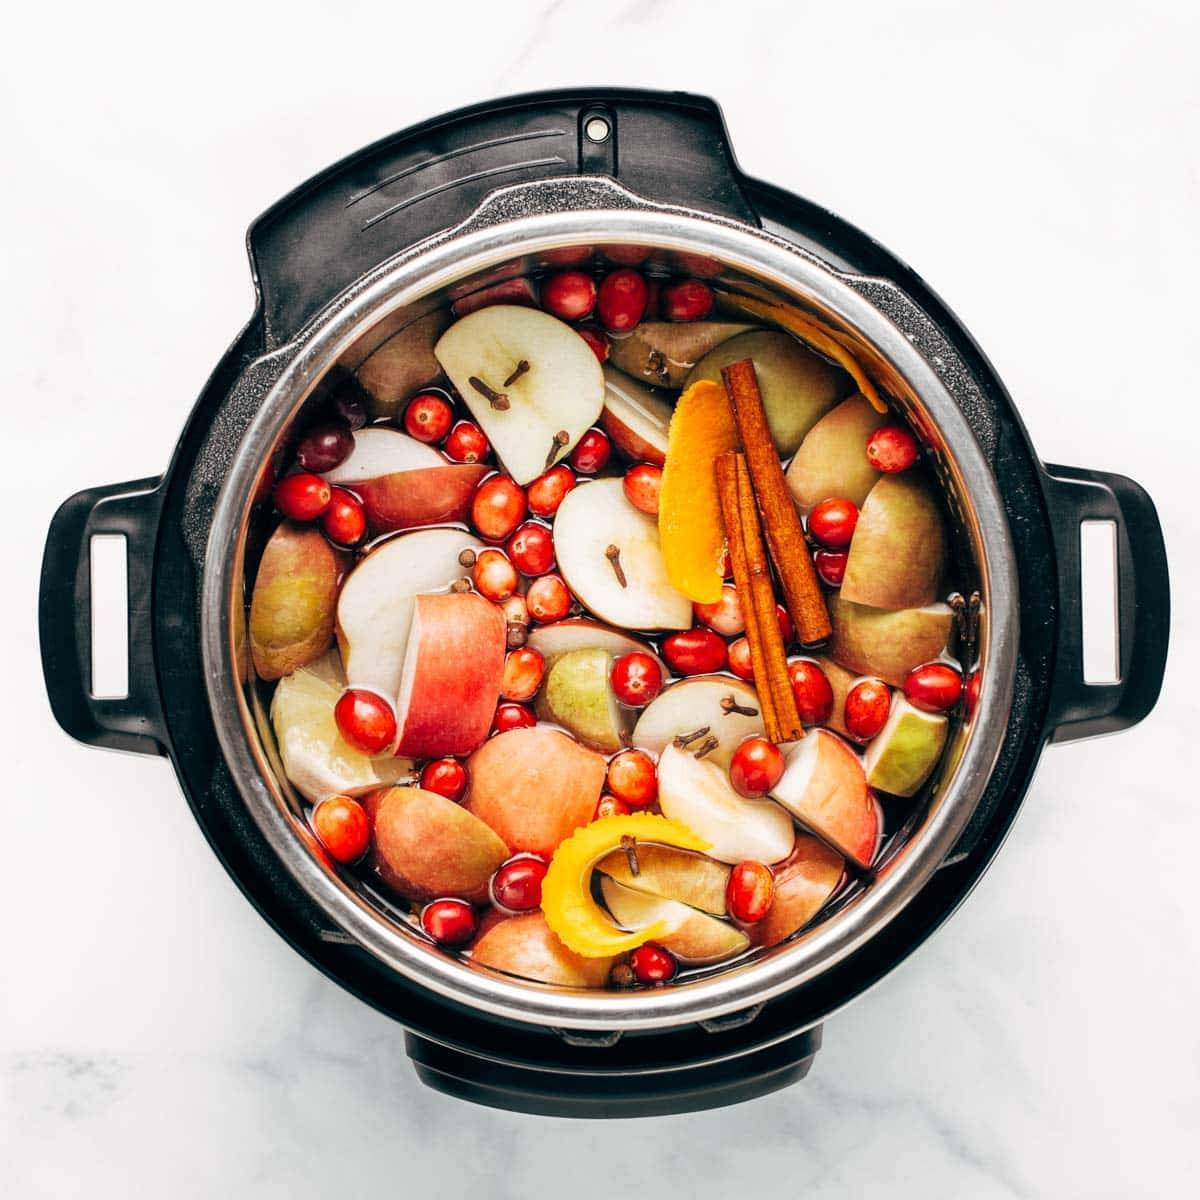 Apple cider in the Instant Pot.